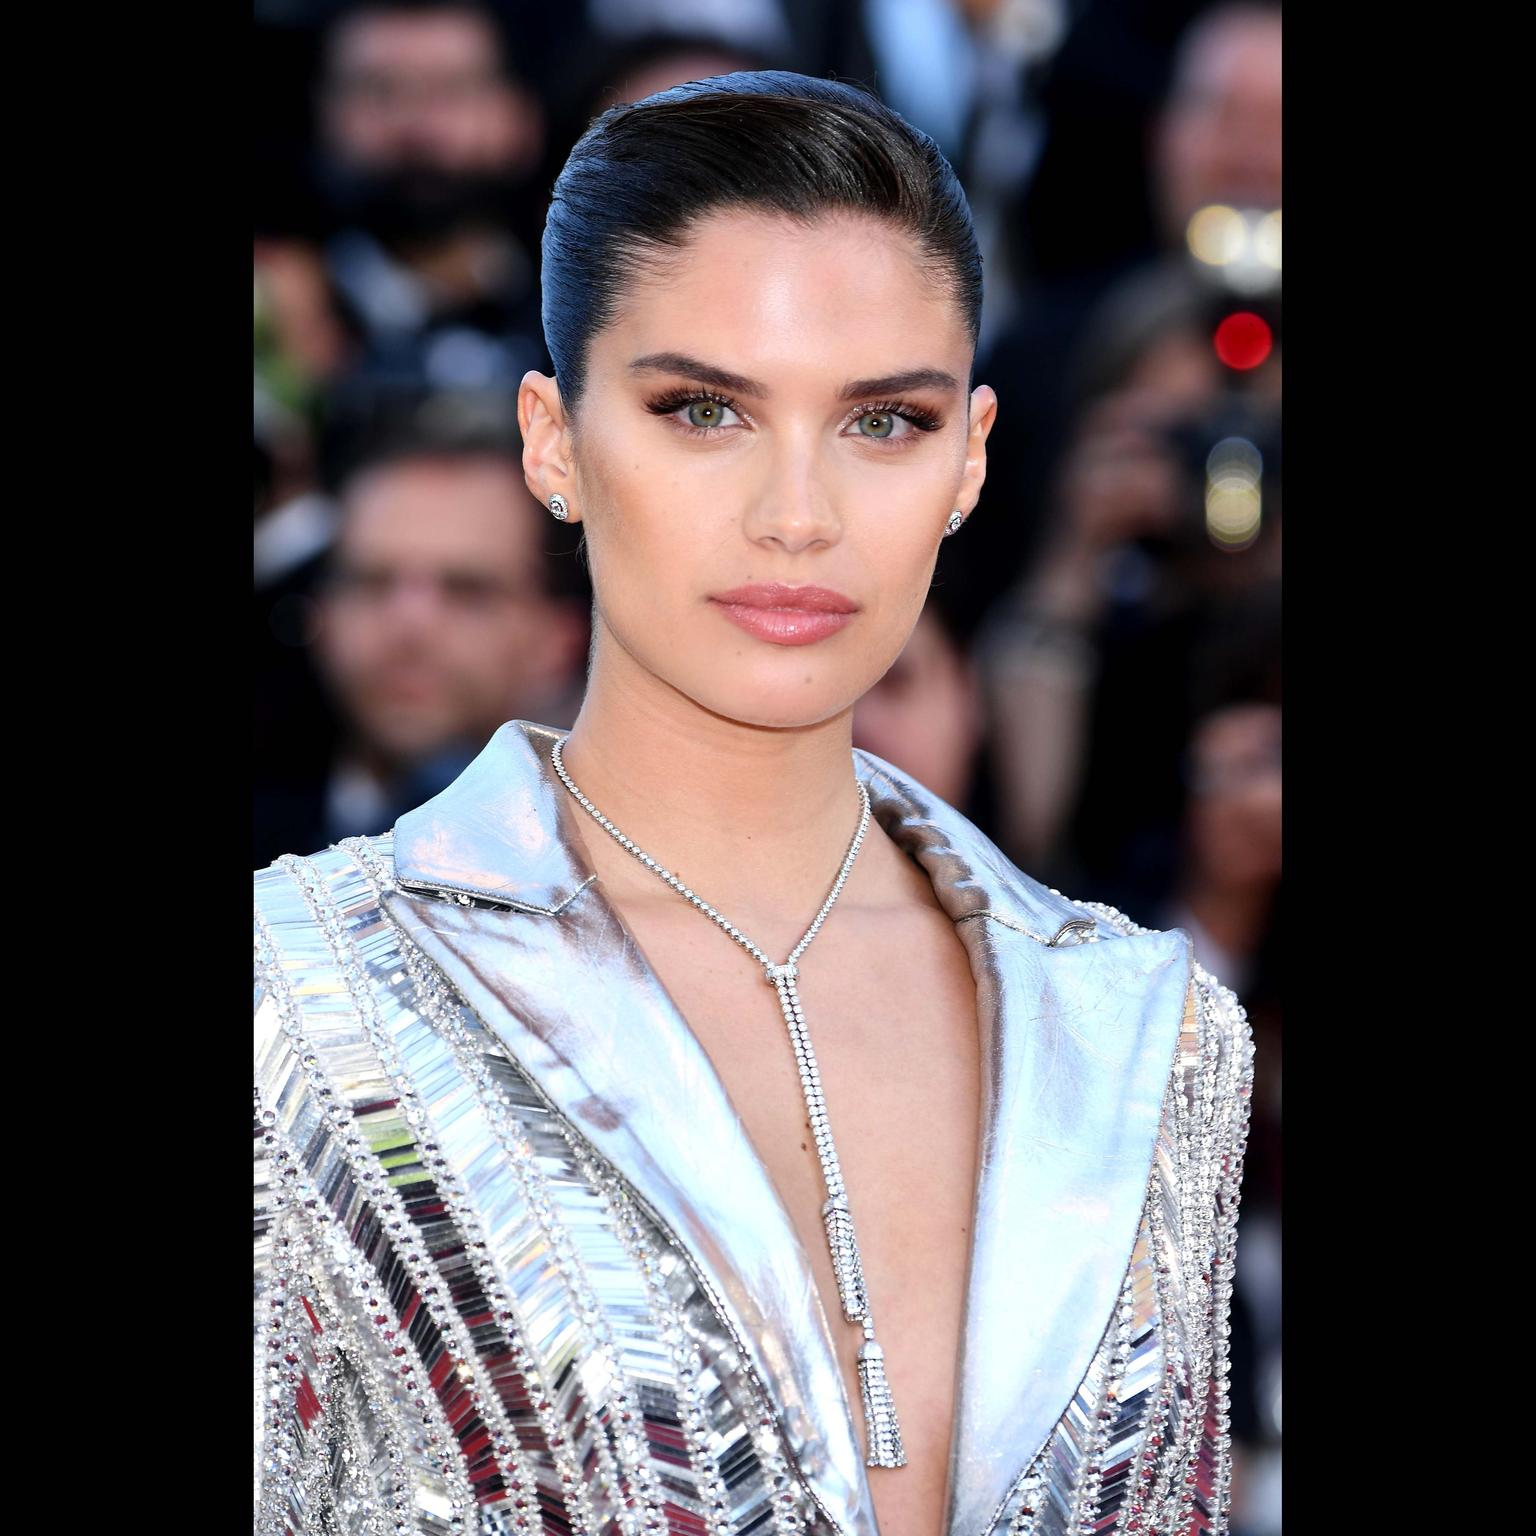 Sara Sampaio Boucheron jewels Cannes 2019